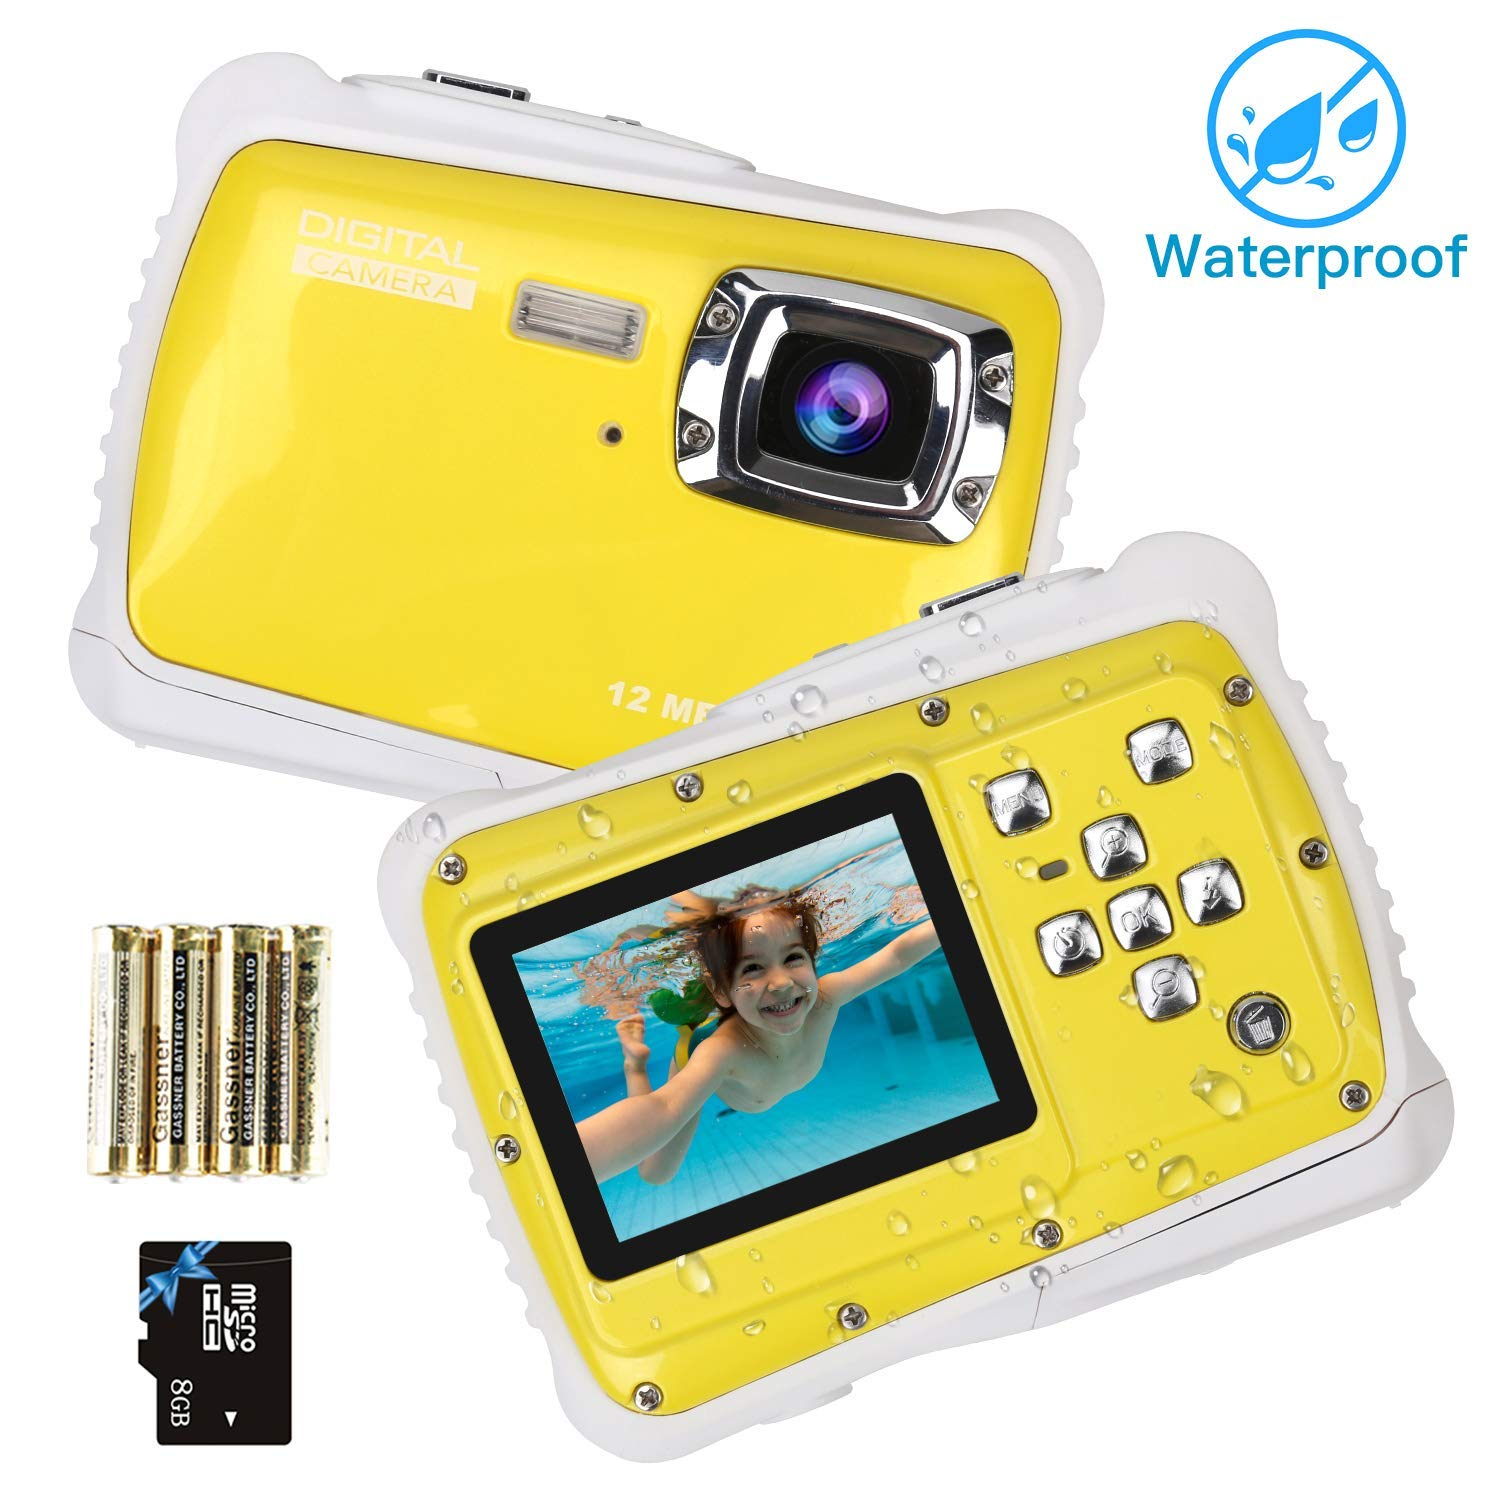 Kndio Kids Camera,Waterproof Camera for Kids Underwater Action Camera Camcorder with 12MP HD 8X Digital Zoom Flash Mic 2.0 Inch LCD Display with 8G SD Card 3 Non-Rechargeable Batteries Included by Kndio (Image #1)